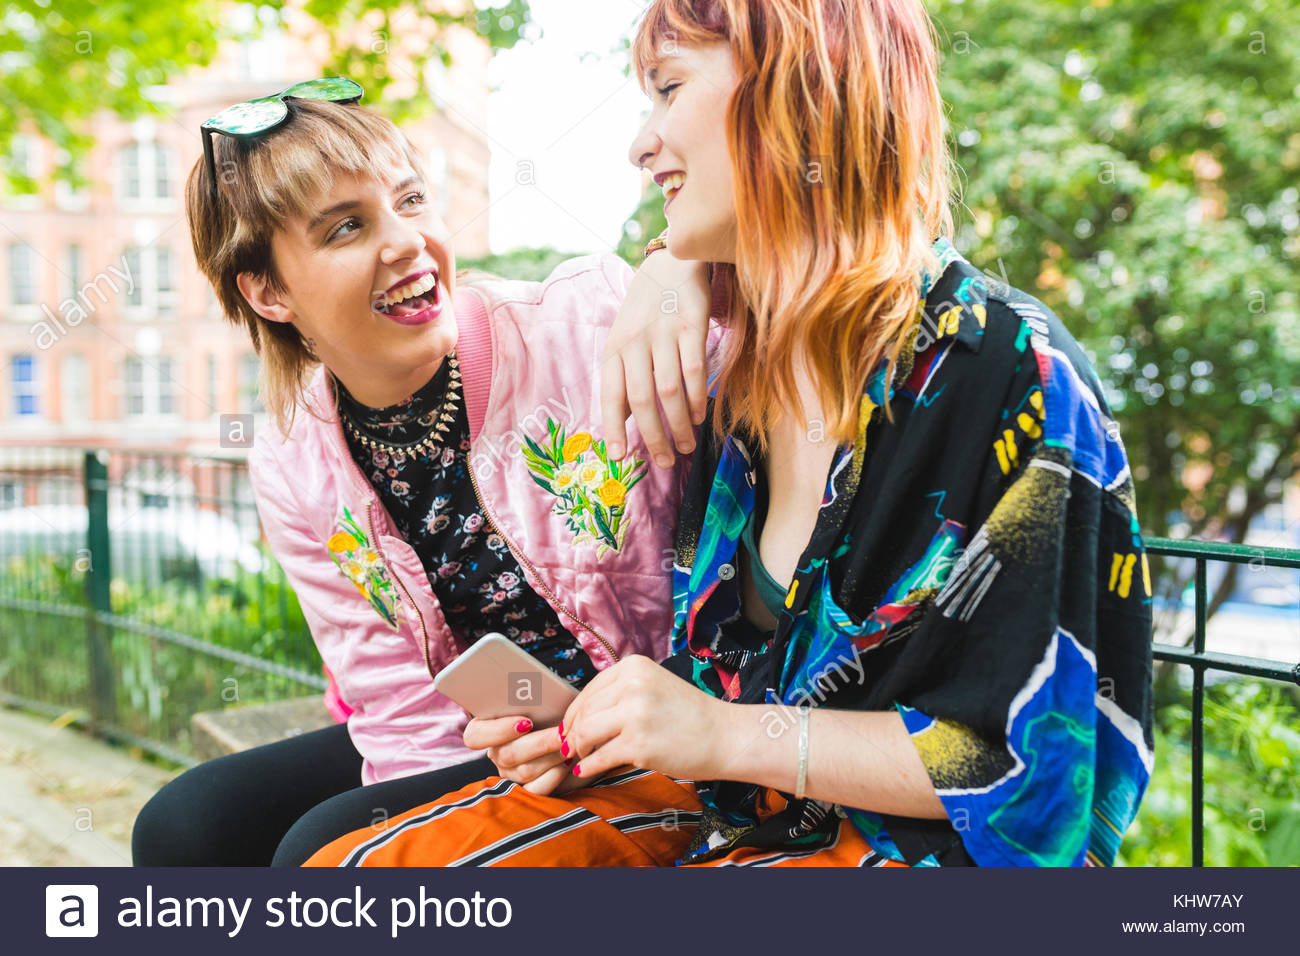 Two retro styled young women laughing in park - Stock Image